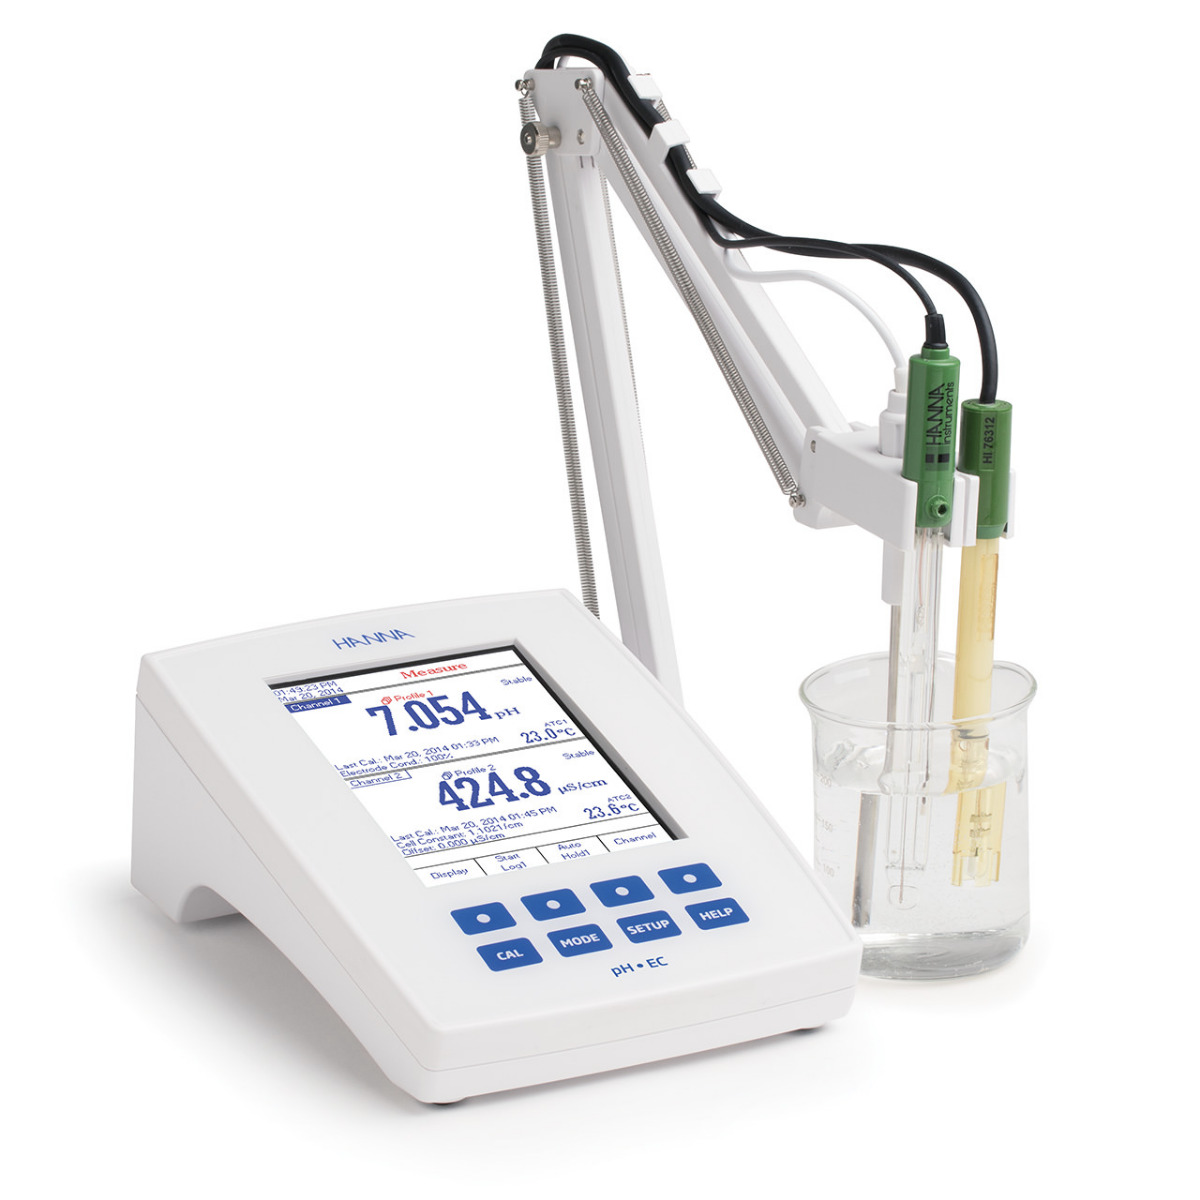 Laboratory Research Grade Benchtop pH/mV/ISE and EC/TDS/Salinity/Resistivity Meter - HI5522